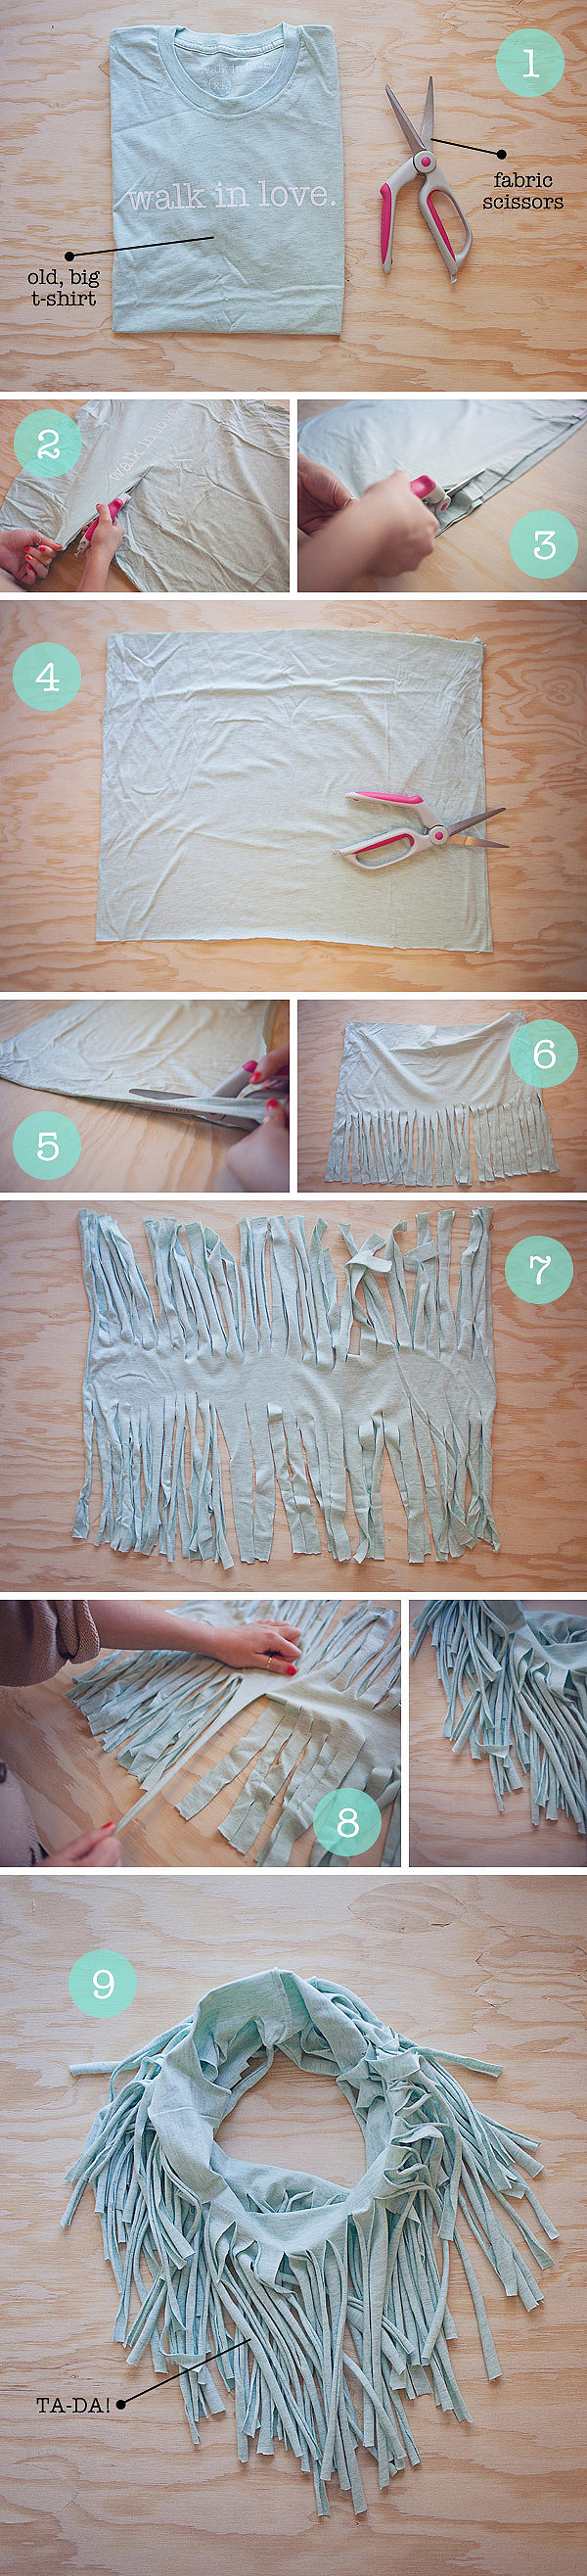 DIY Scarf Pictures, Photos, and Images for Facebook ...